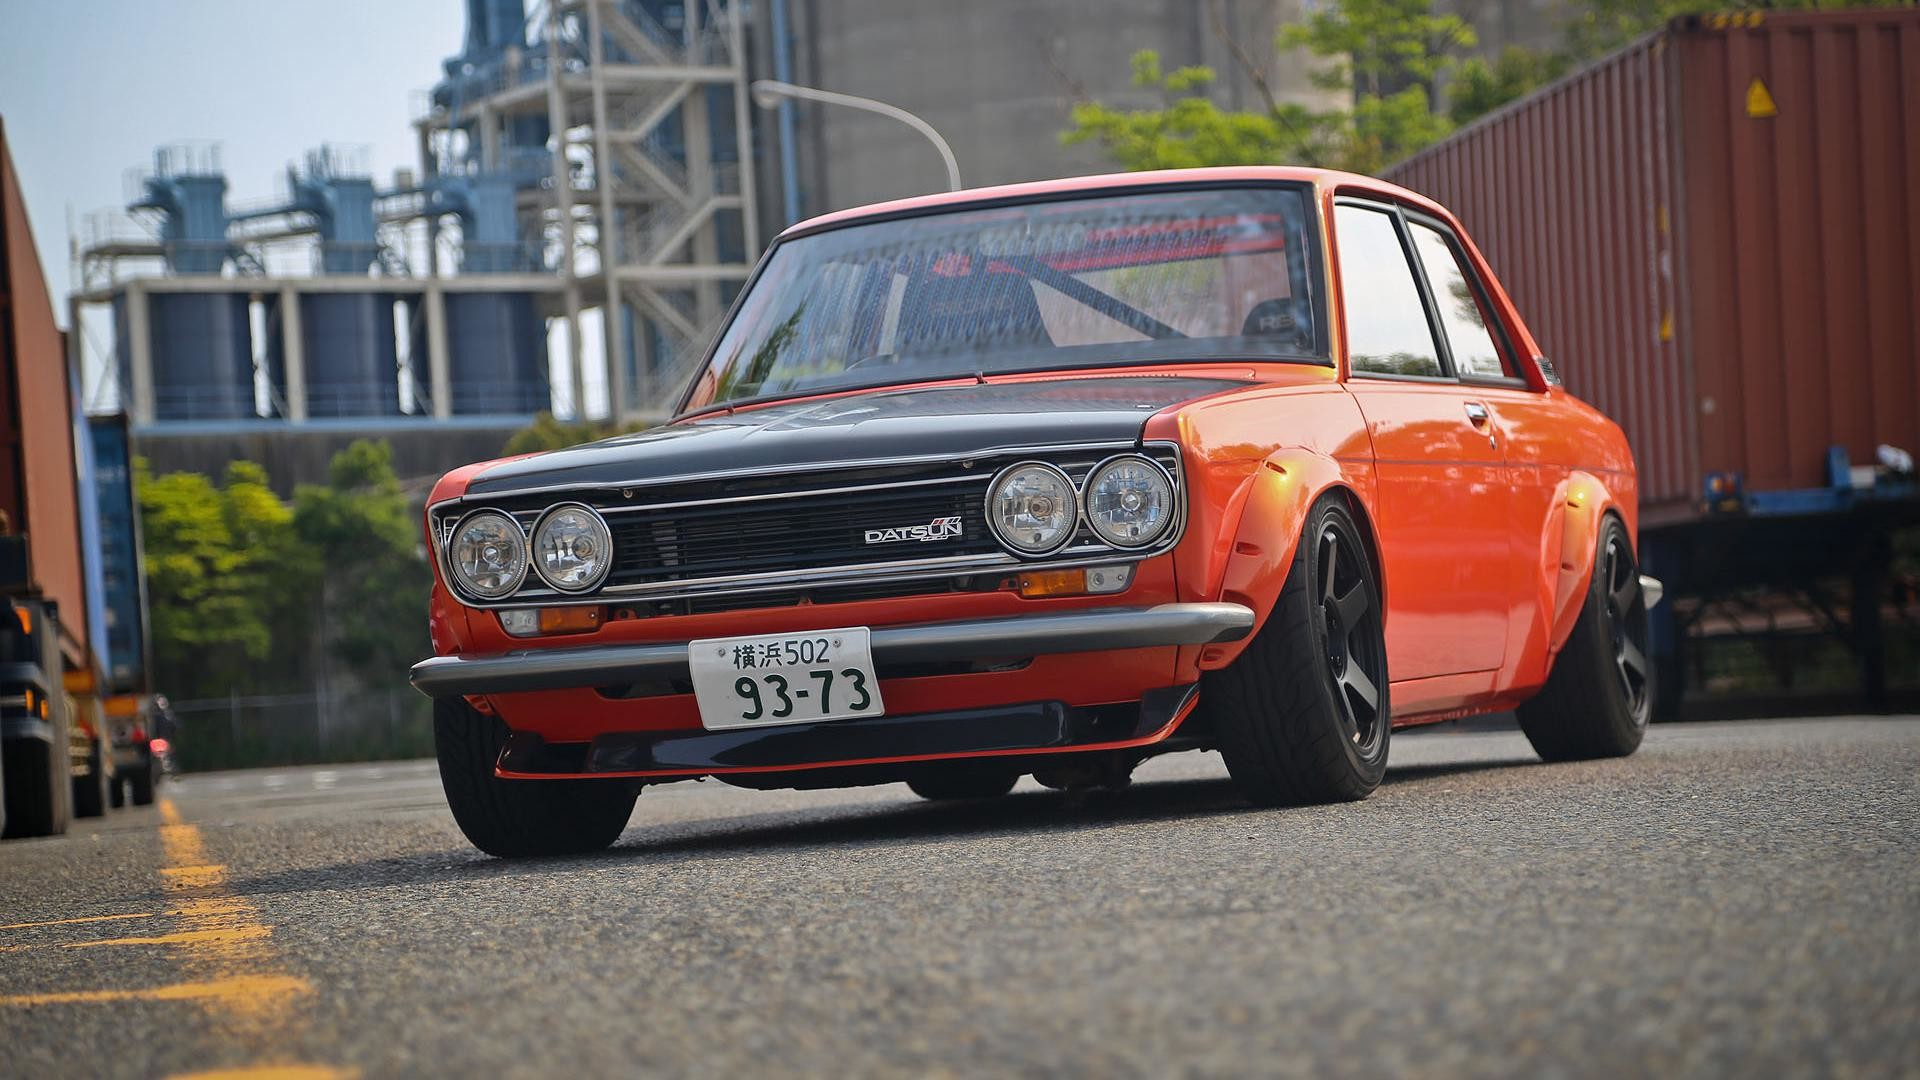 Datsun 510 Wallpaper 1920x1080